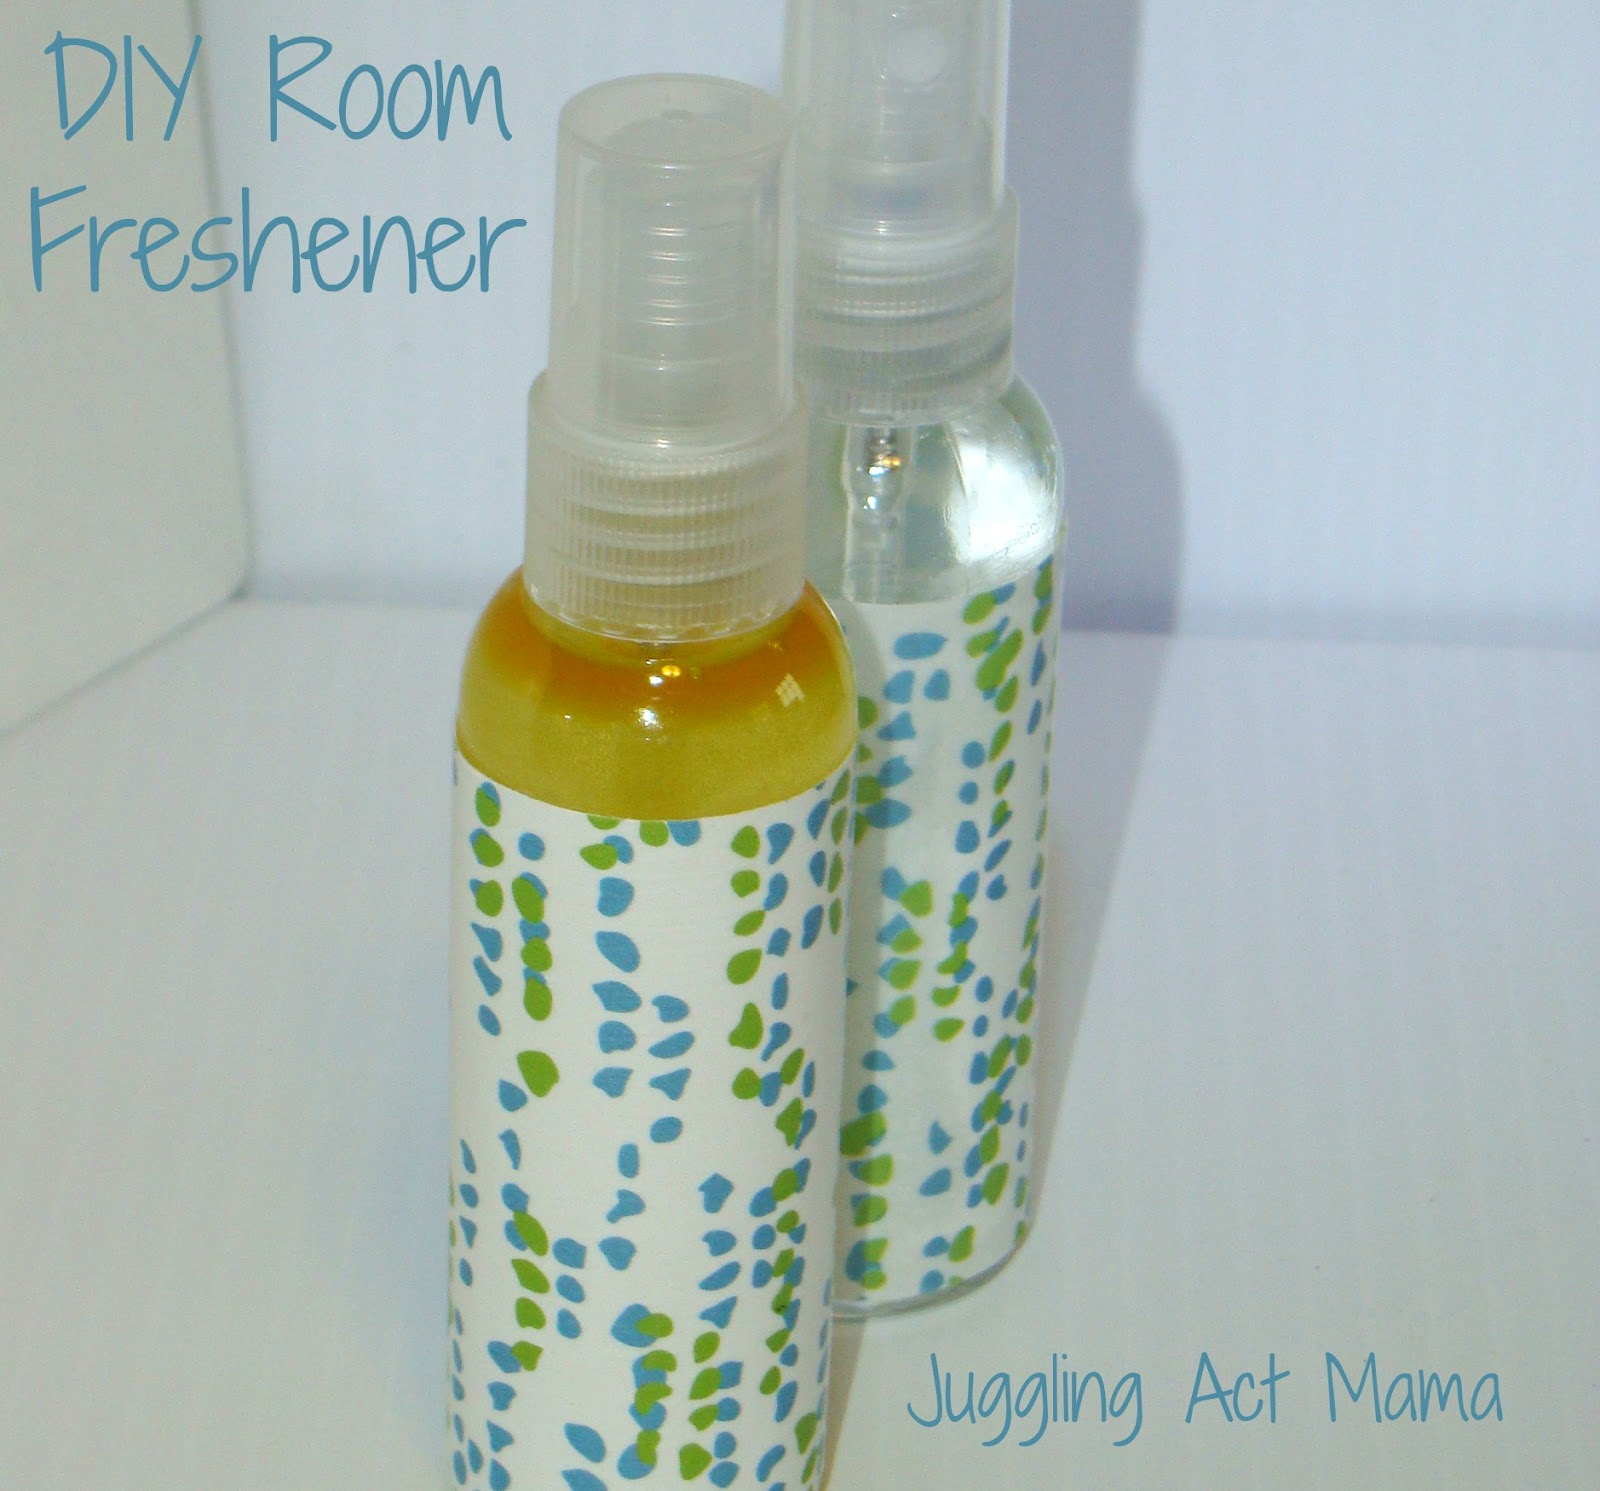 DIY Room Freshener - Juggling Act Mama